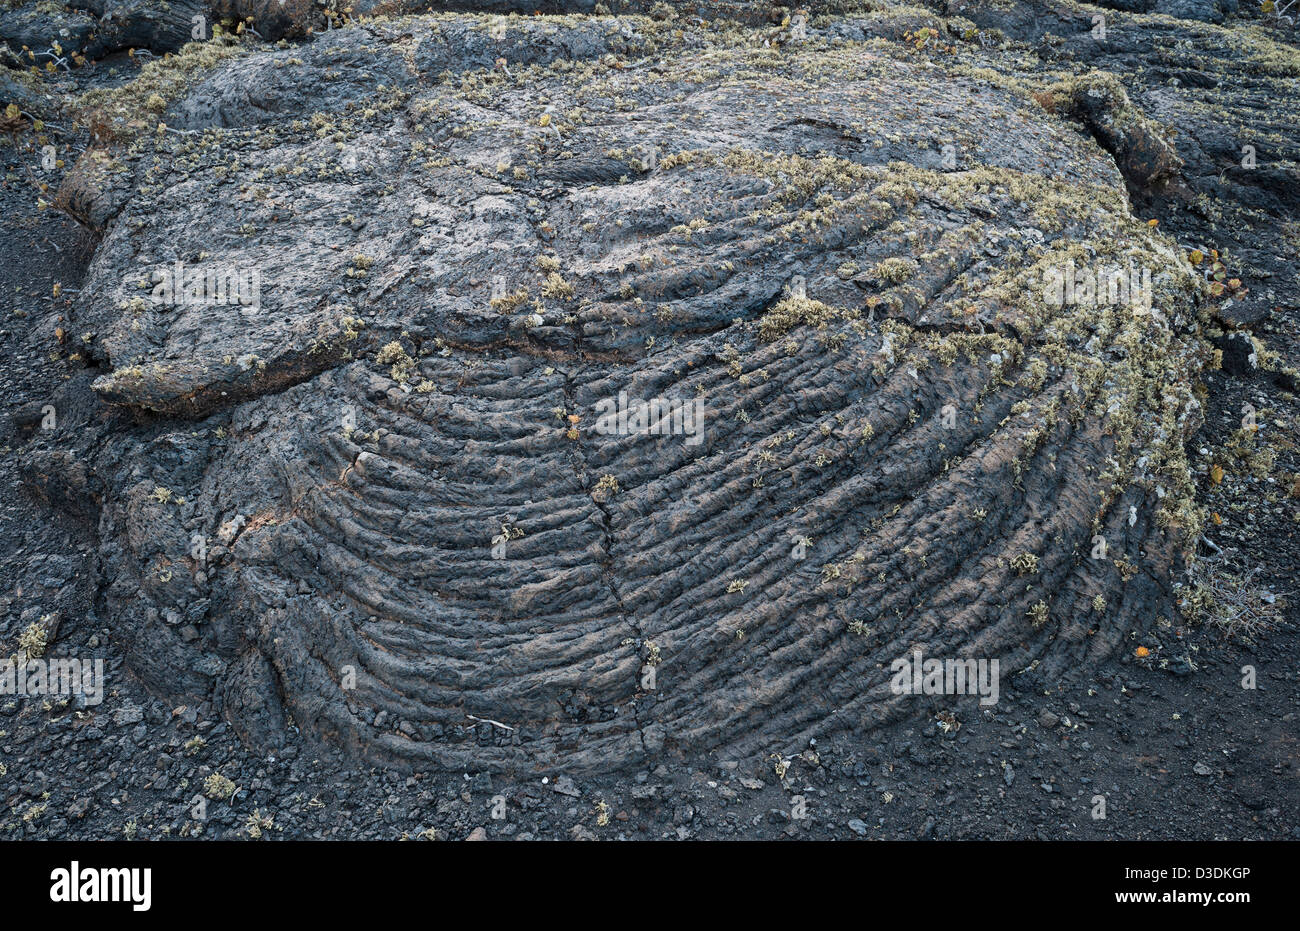 Detail of lichen-covered pahoehoe or ropy lava near Masdache, Lanzarote, Canary Islands, Spain - Stock Image